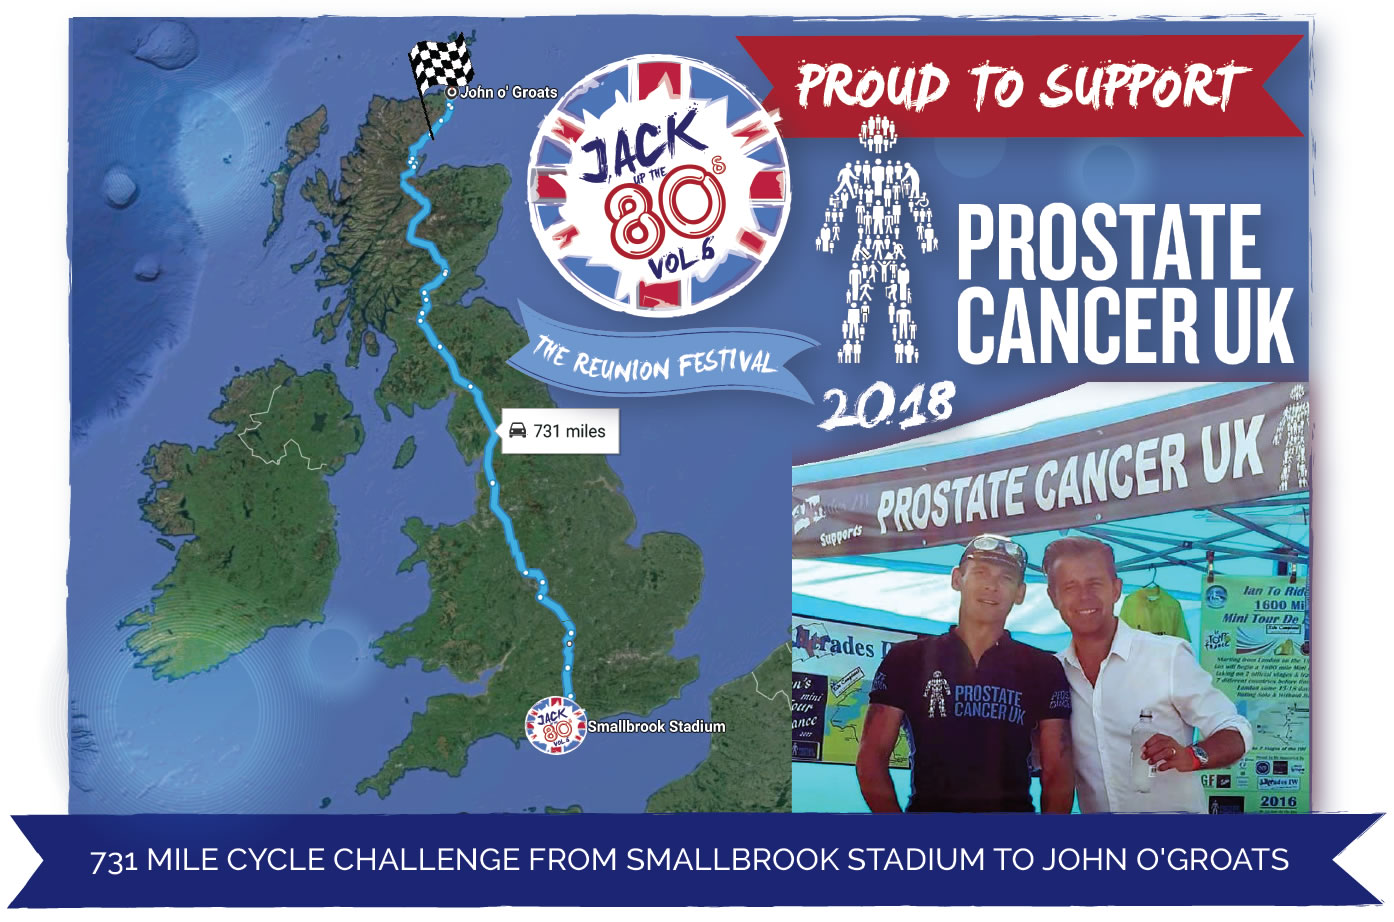 Jack Up The 80s proud to support Prostate Cancer UK